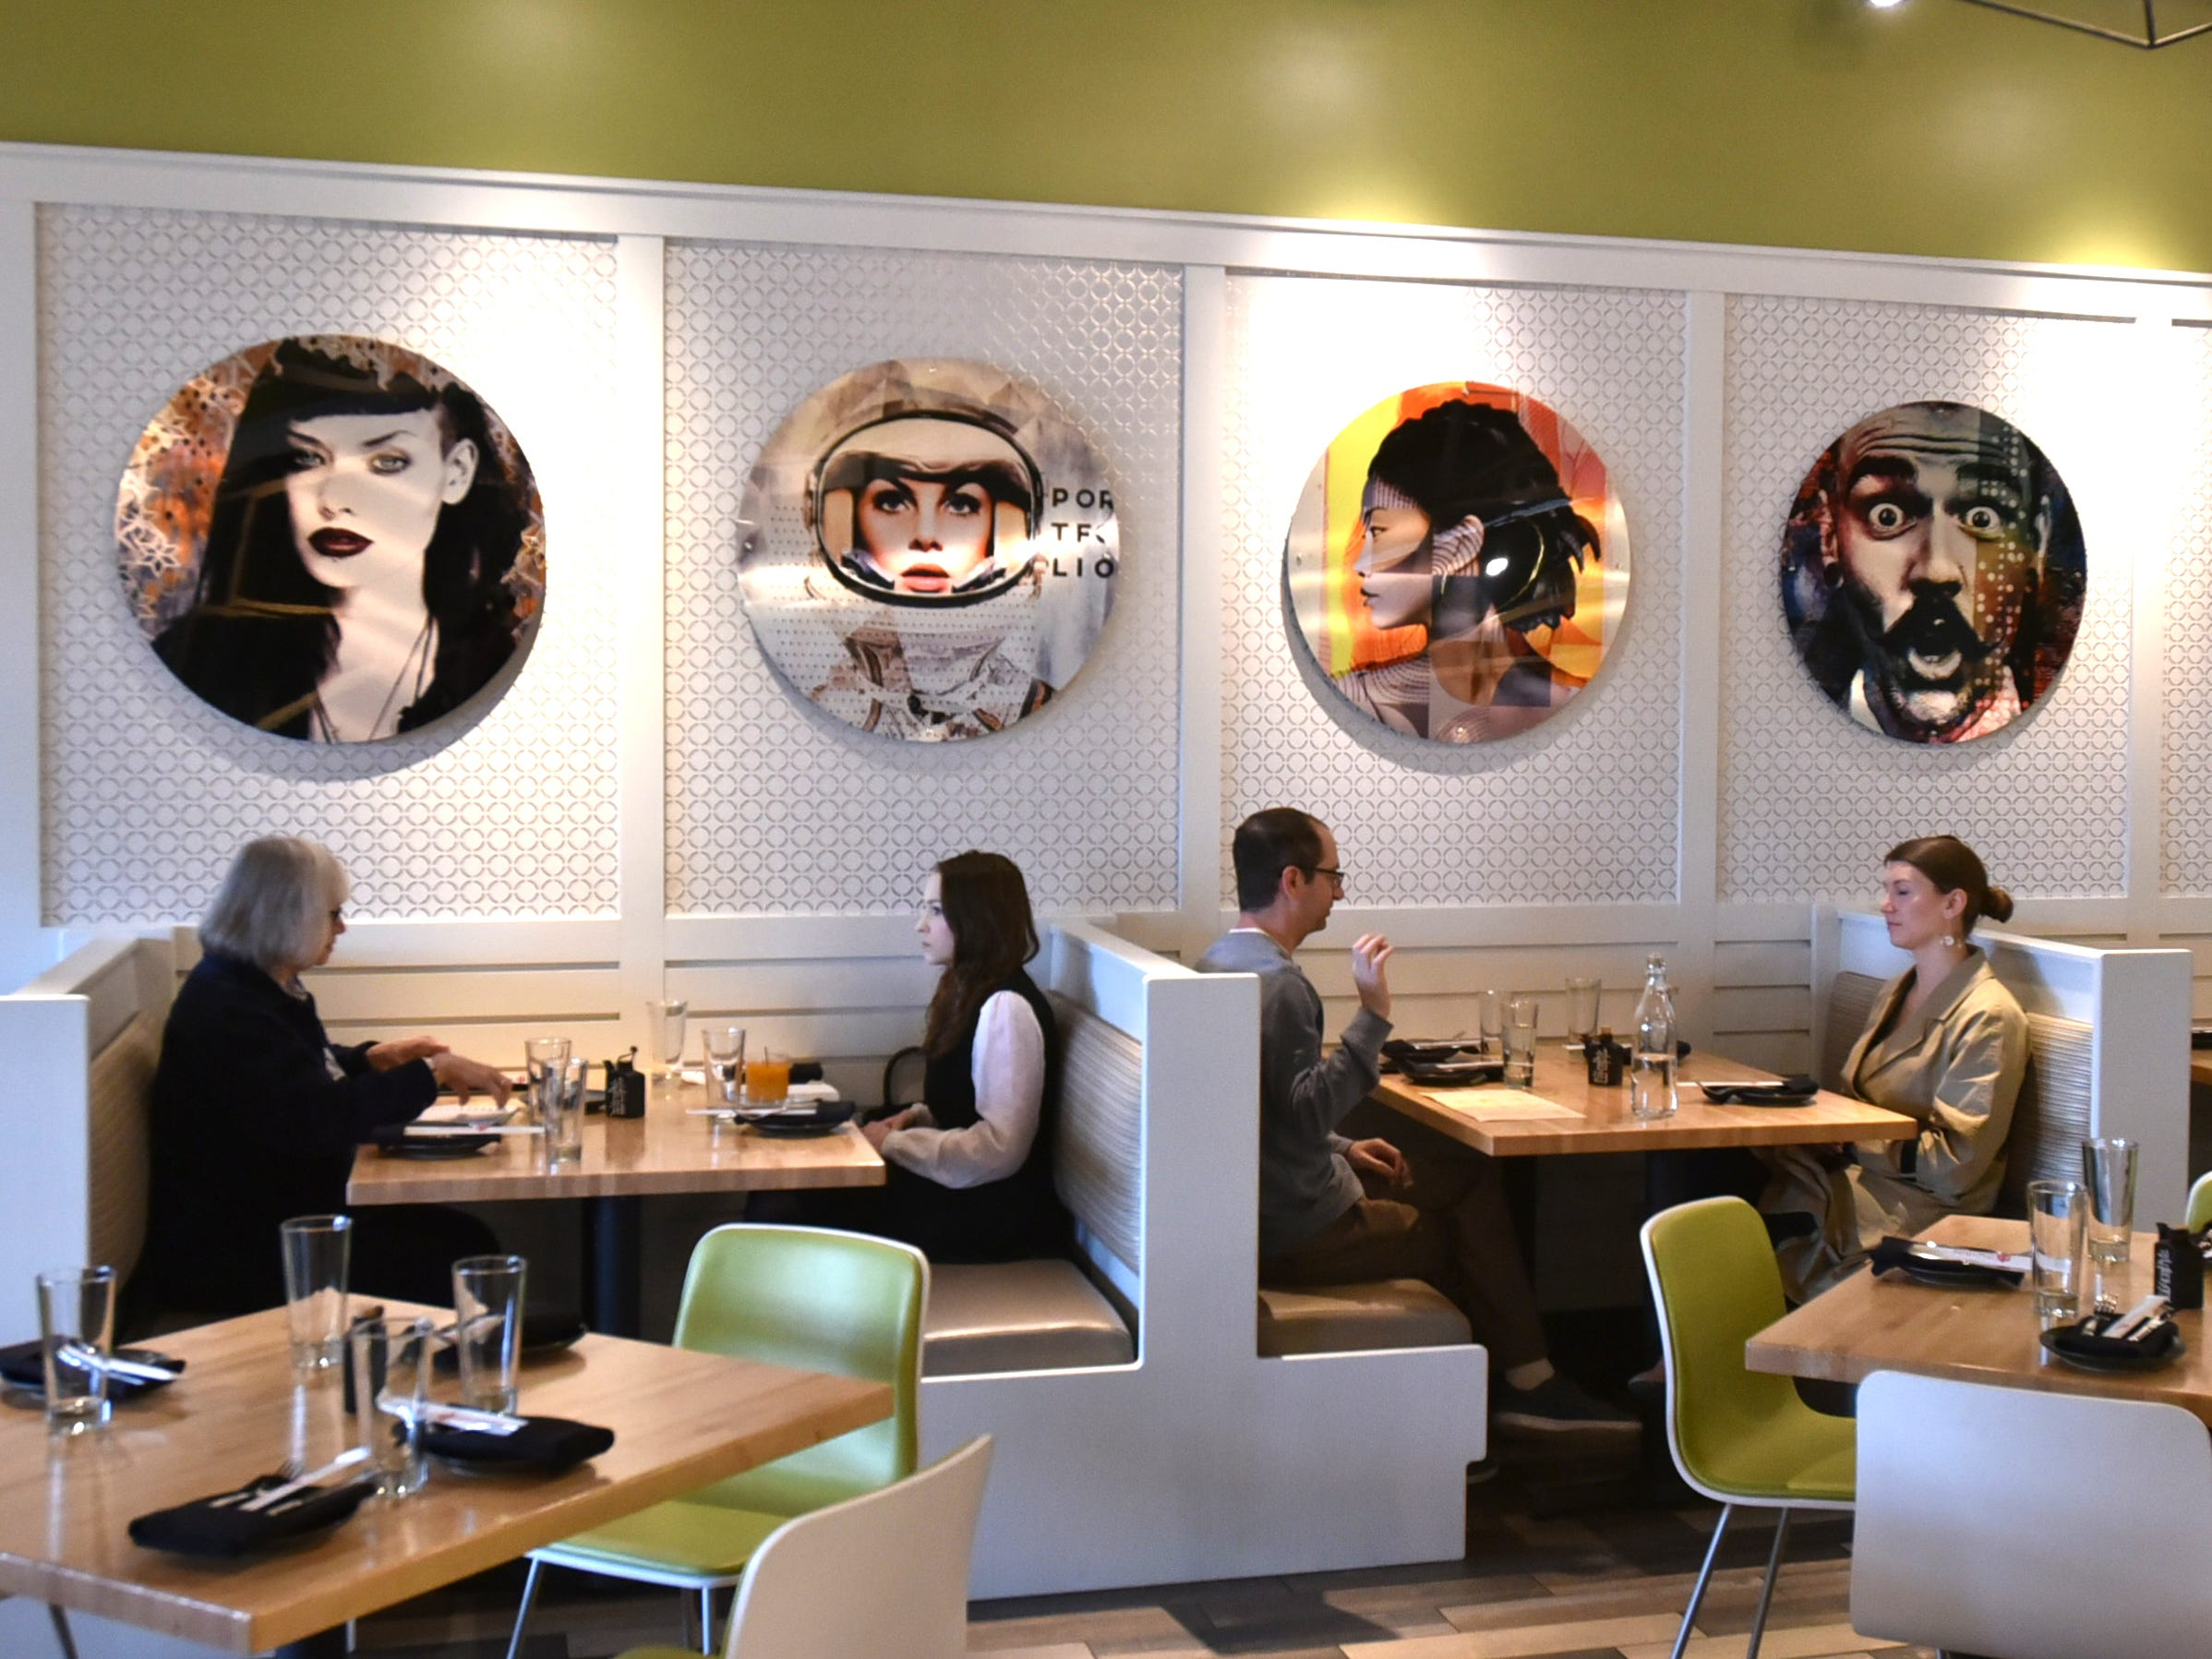 A quartet of lunch-time diners check out the fare at Zao Jun on May 2.